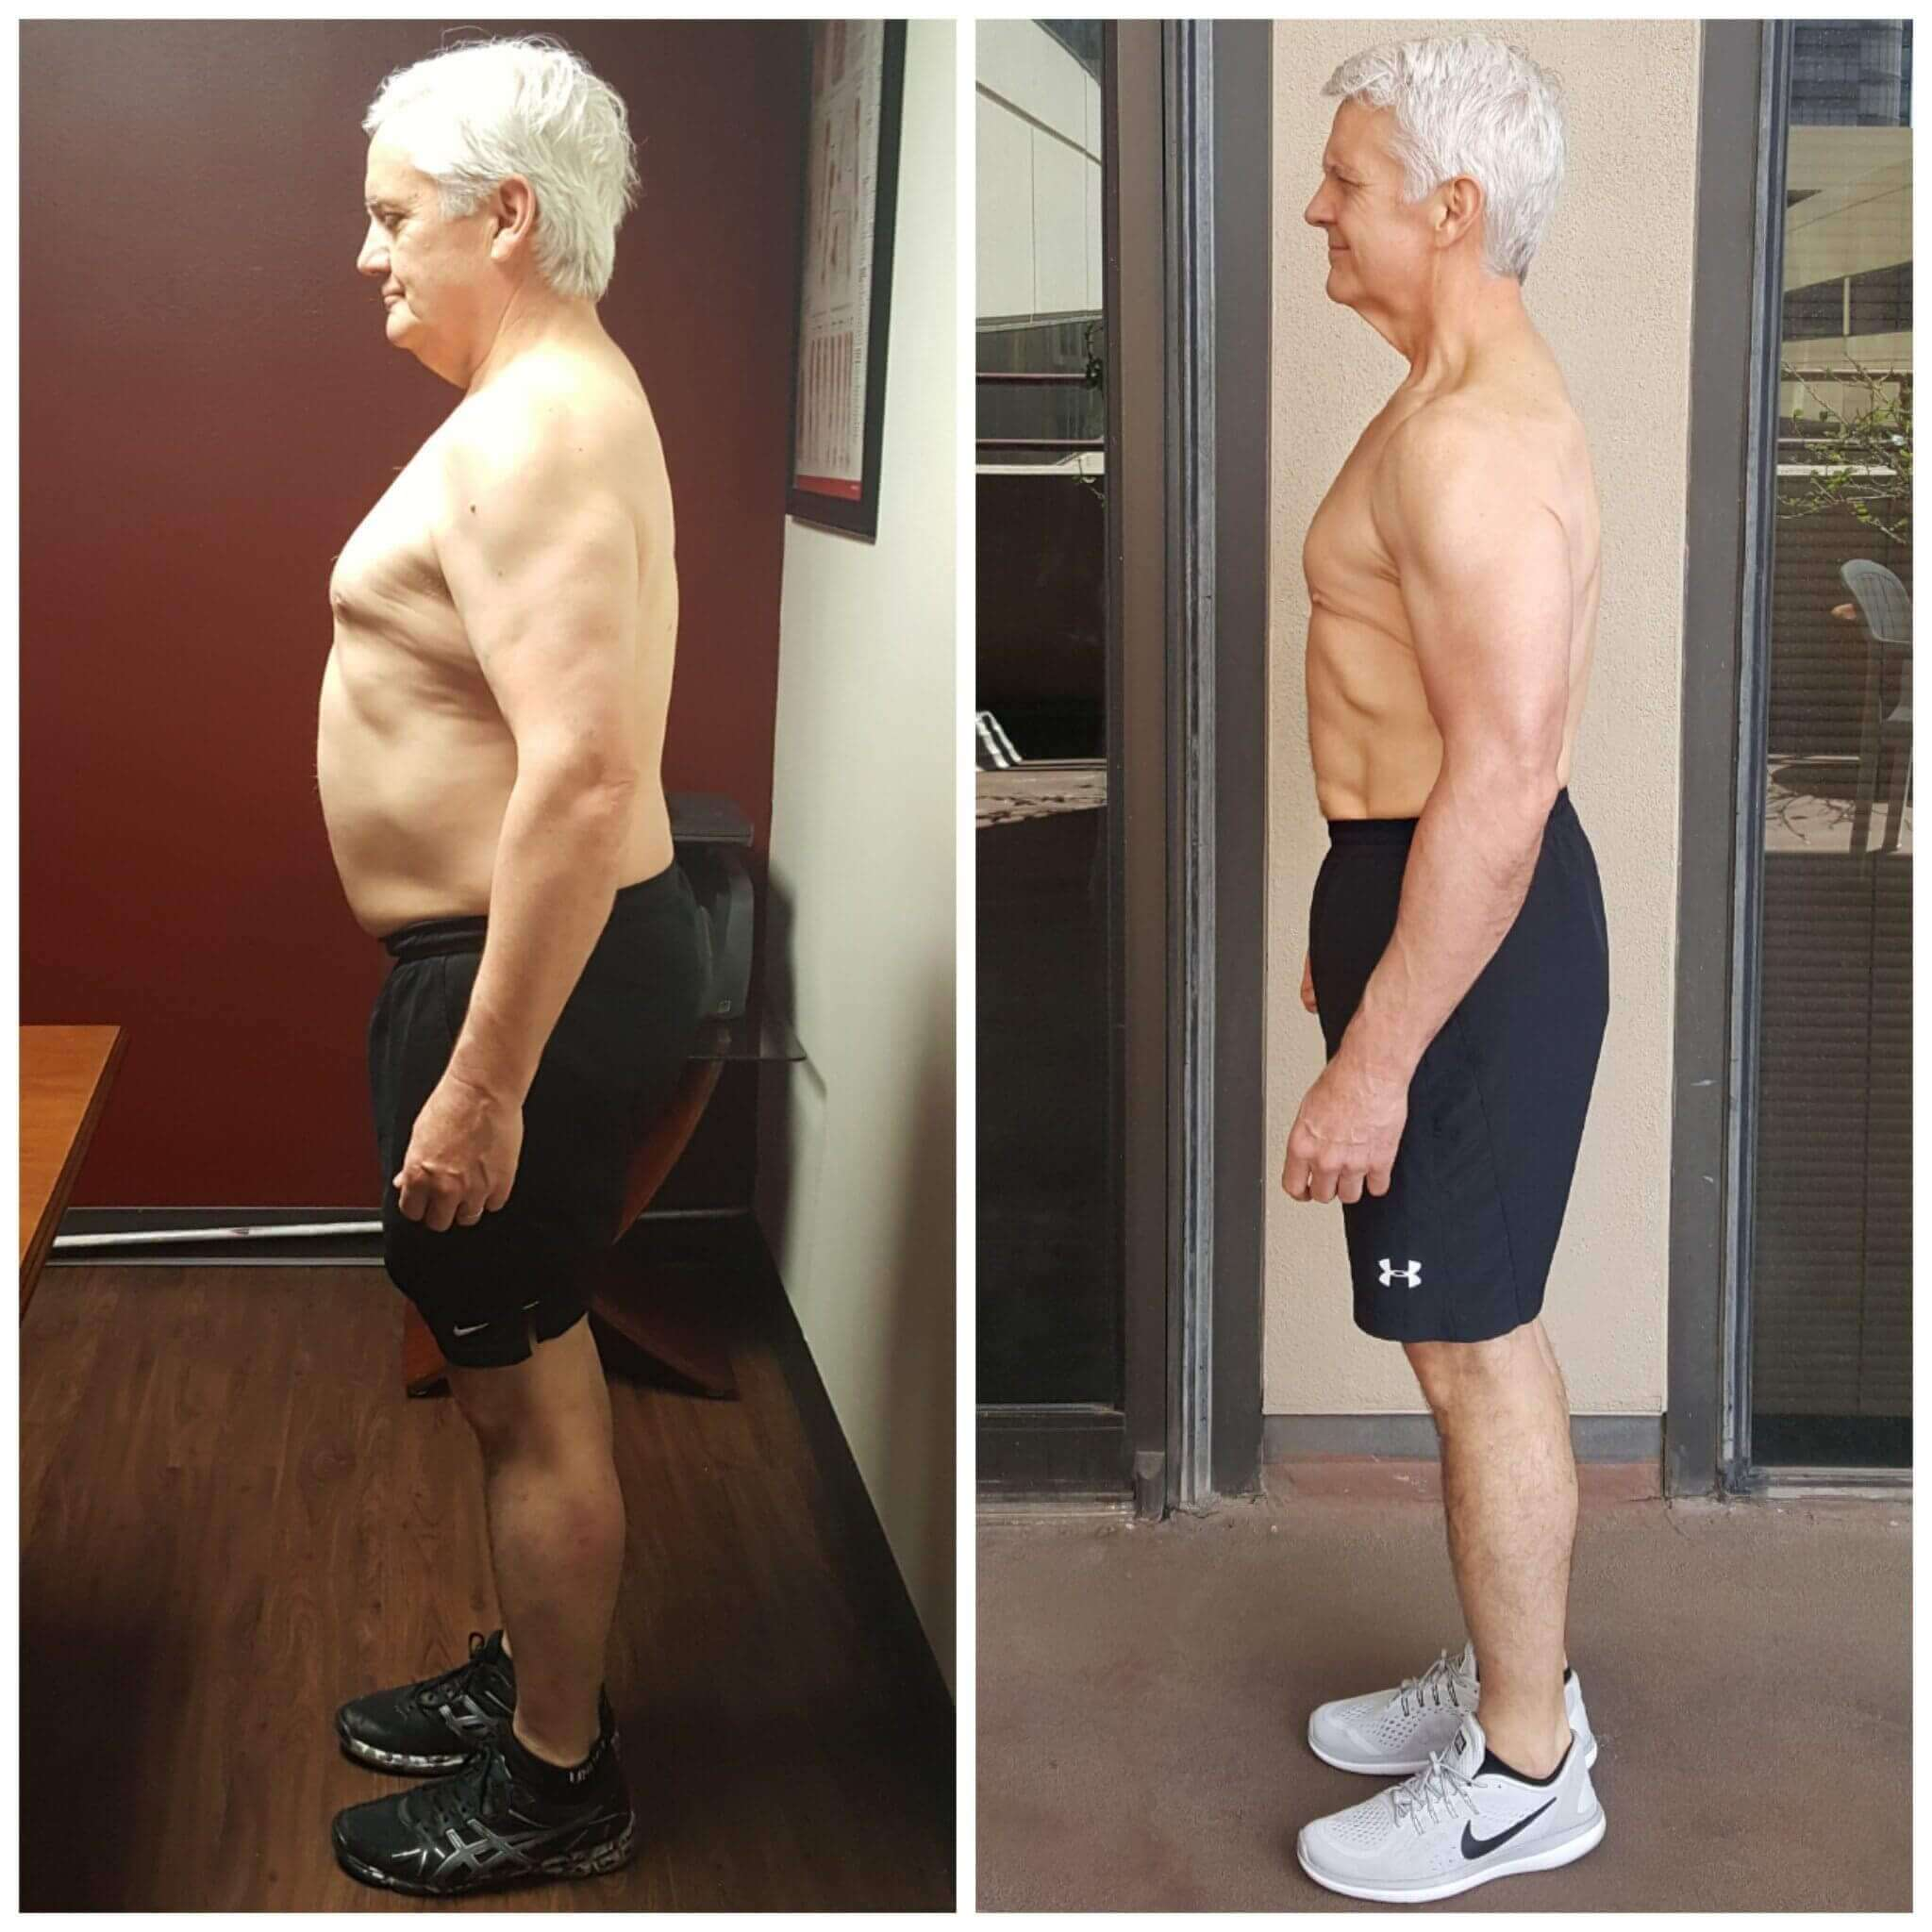 Mike weight loss personal training Dallas